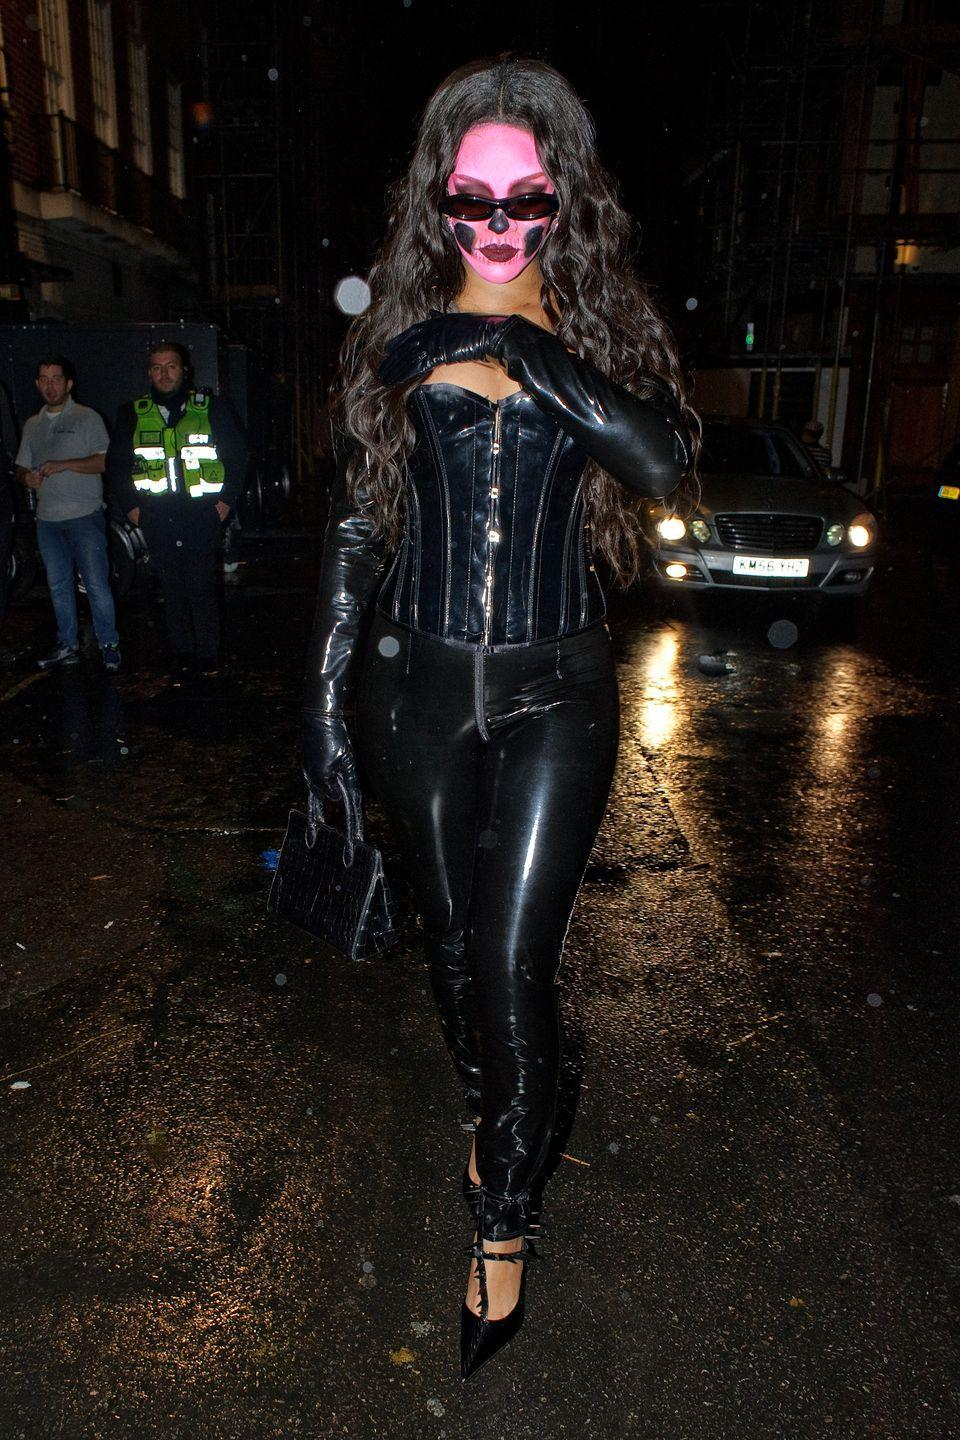 <p>For Halloween, Rih was spotted in a black latex corset, tonal slim-fit pants and gloves when she left Annabel's Halloween Party in Mayfair, London, England with bubblegum face paint on and and rose-tinted sunglasses.</p>